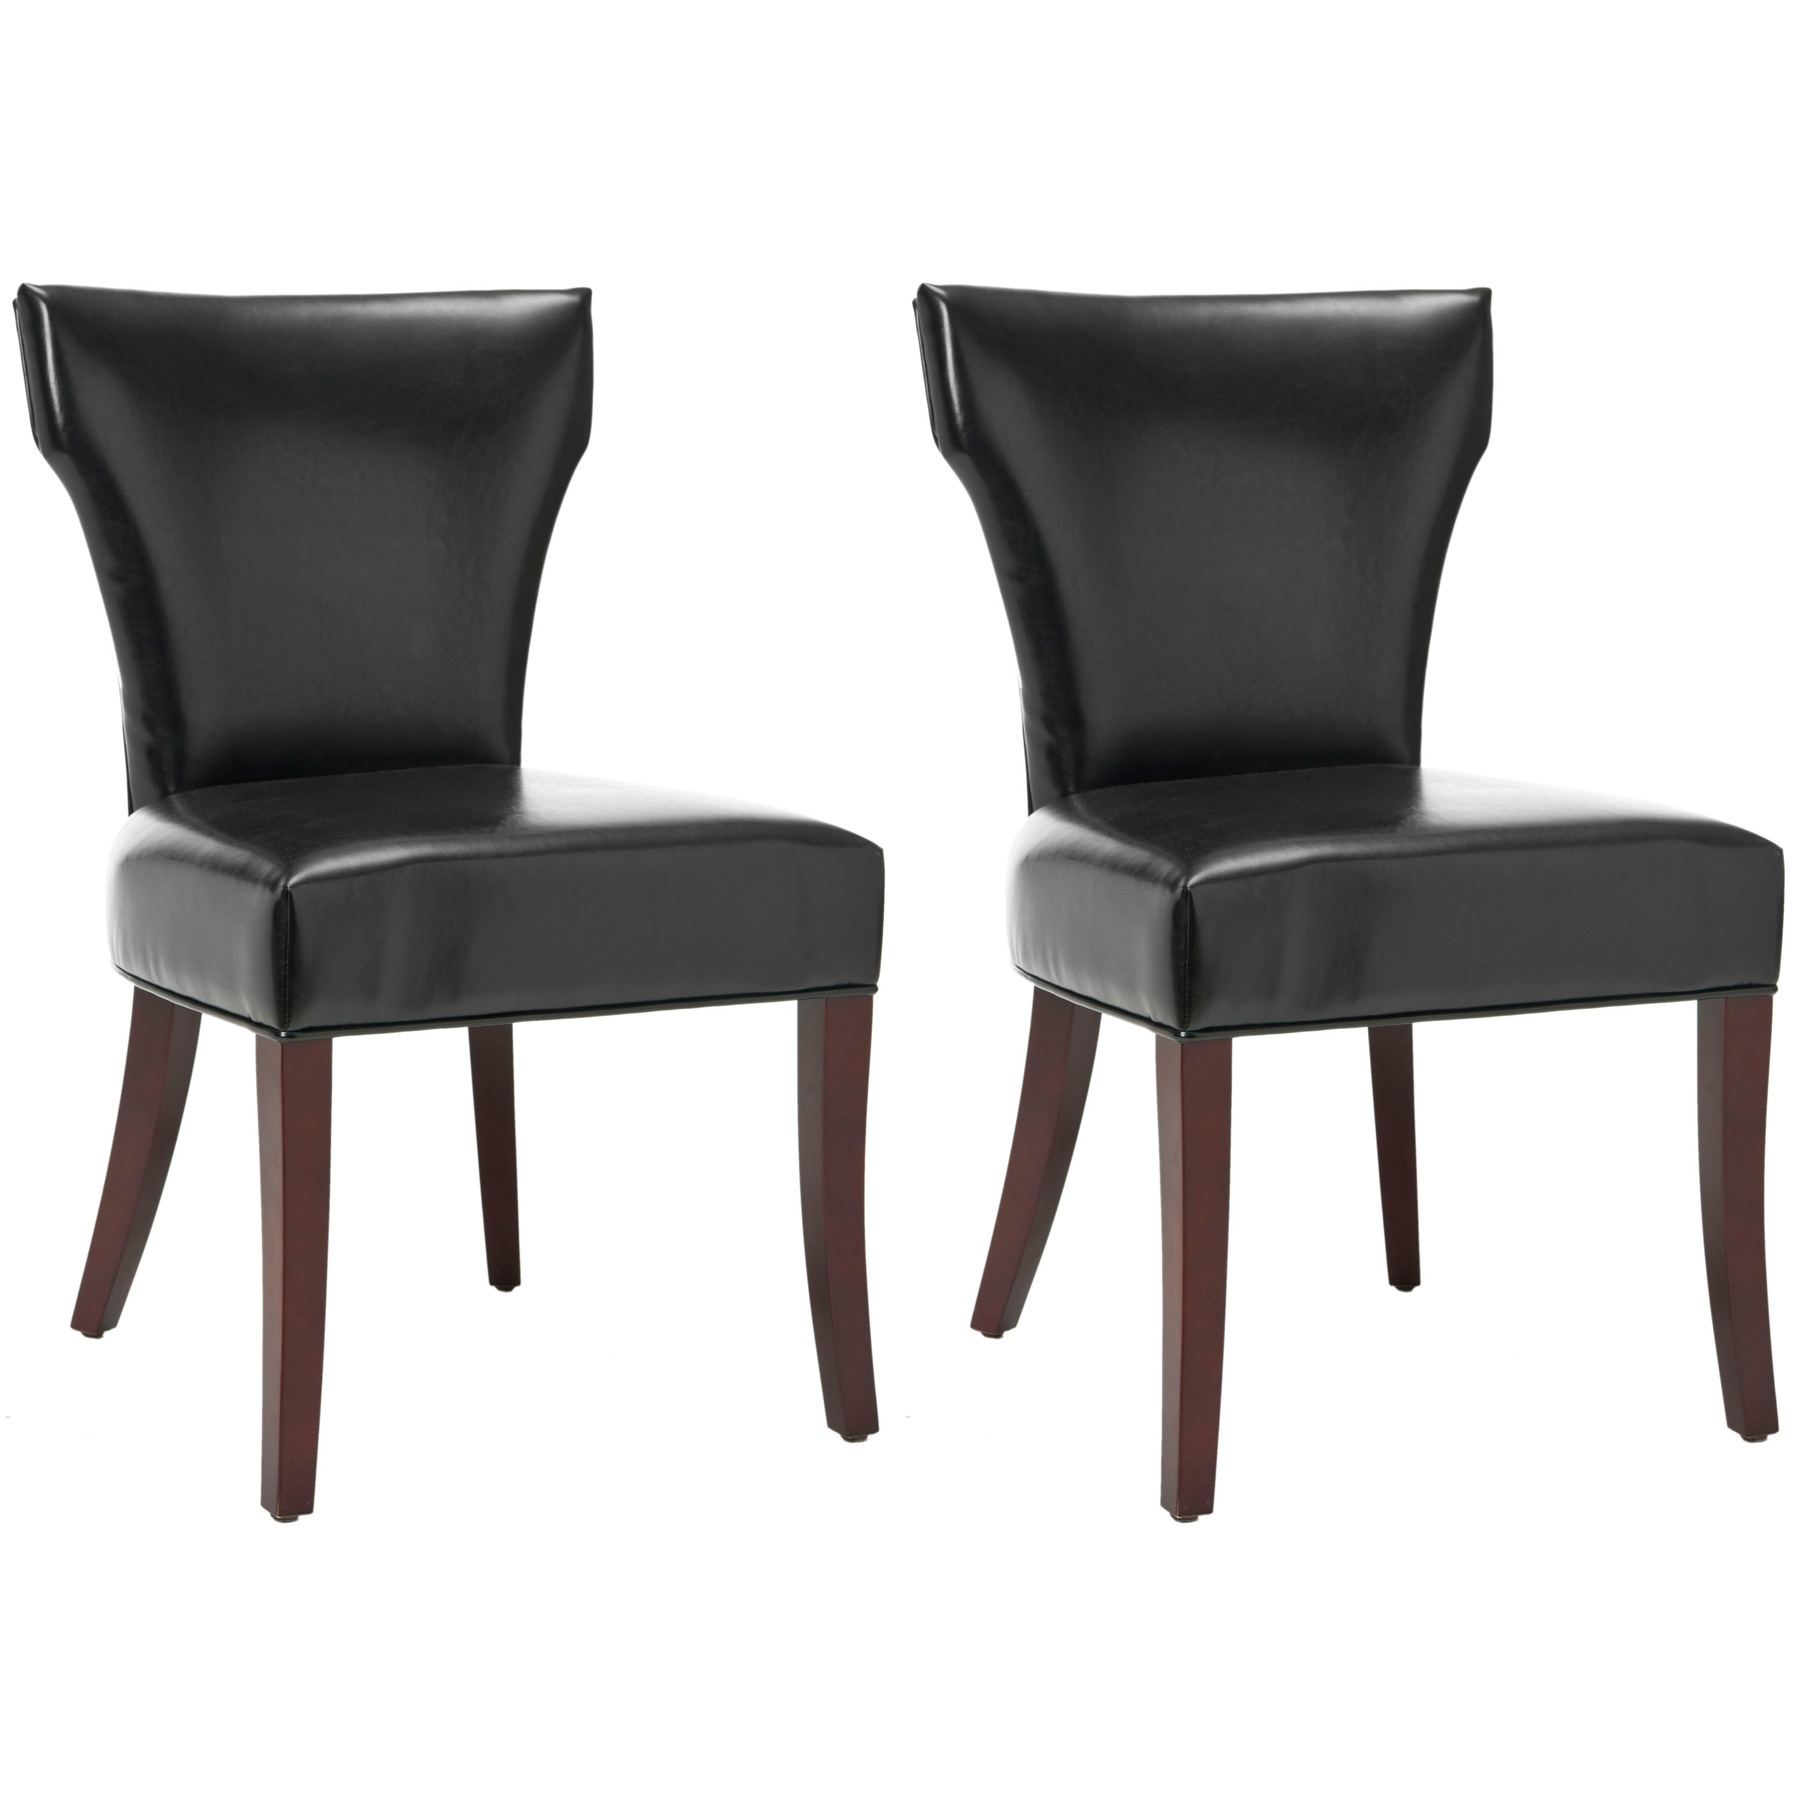 Kmart Dining Chairs Black Leather Dining Chair Kmart